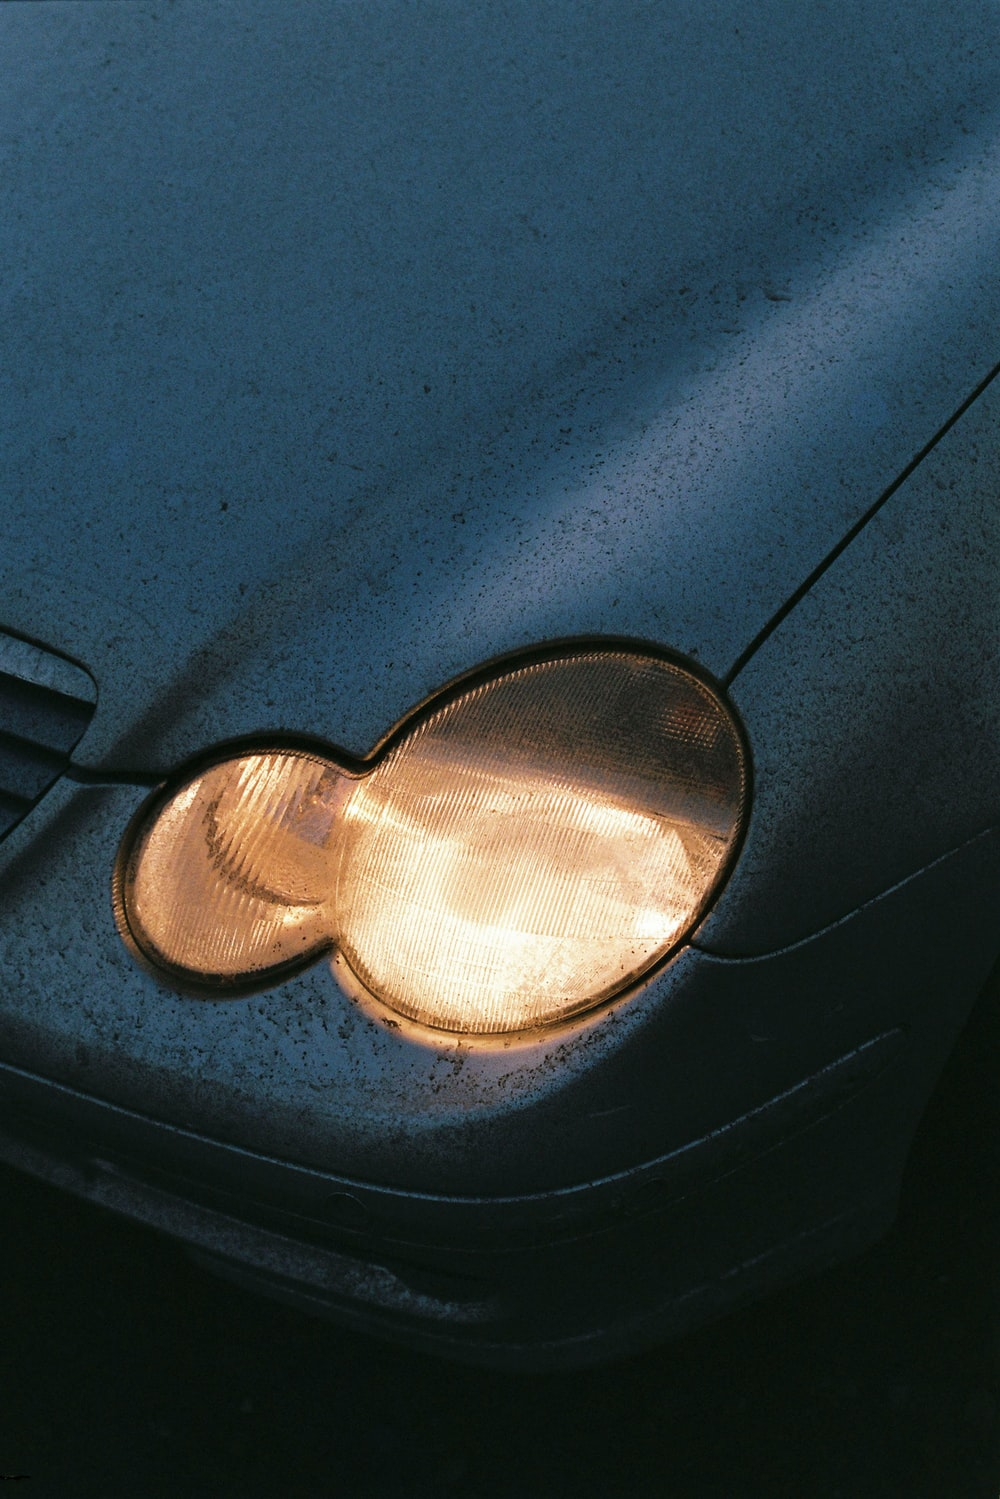 close-up photography of vehicle's headlight